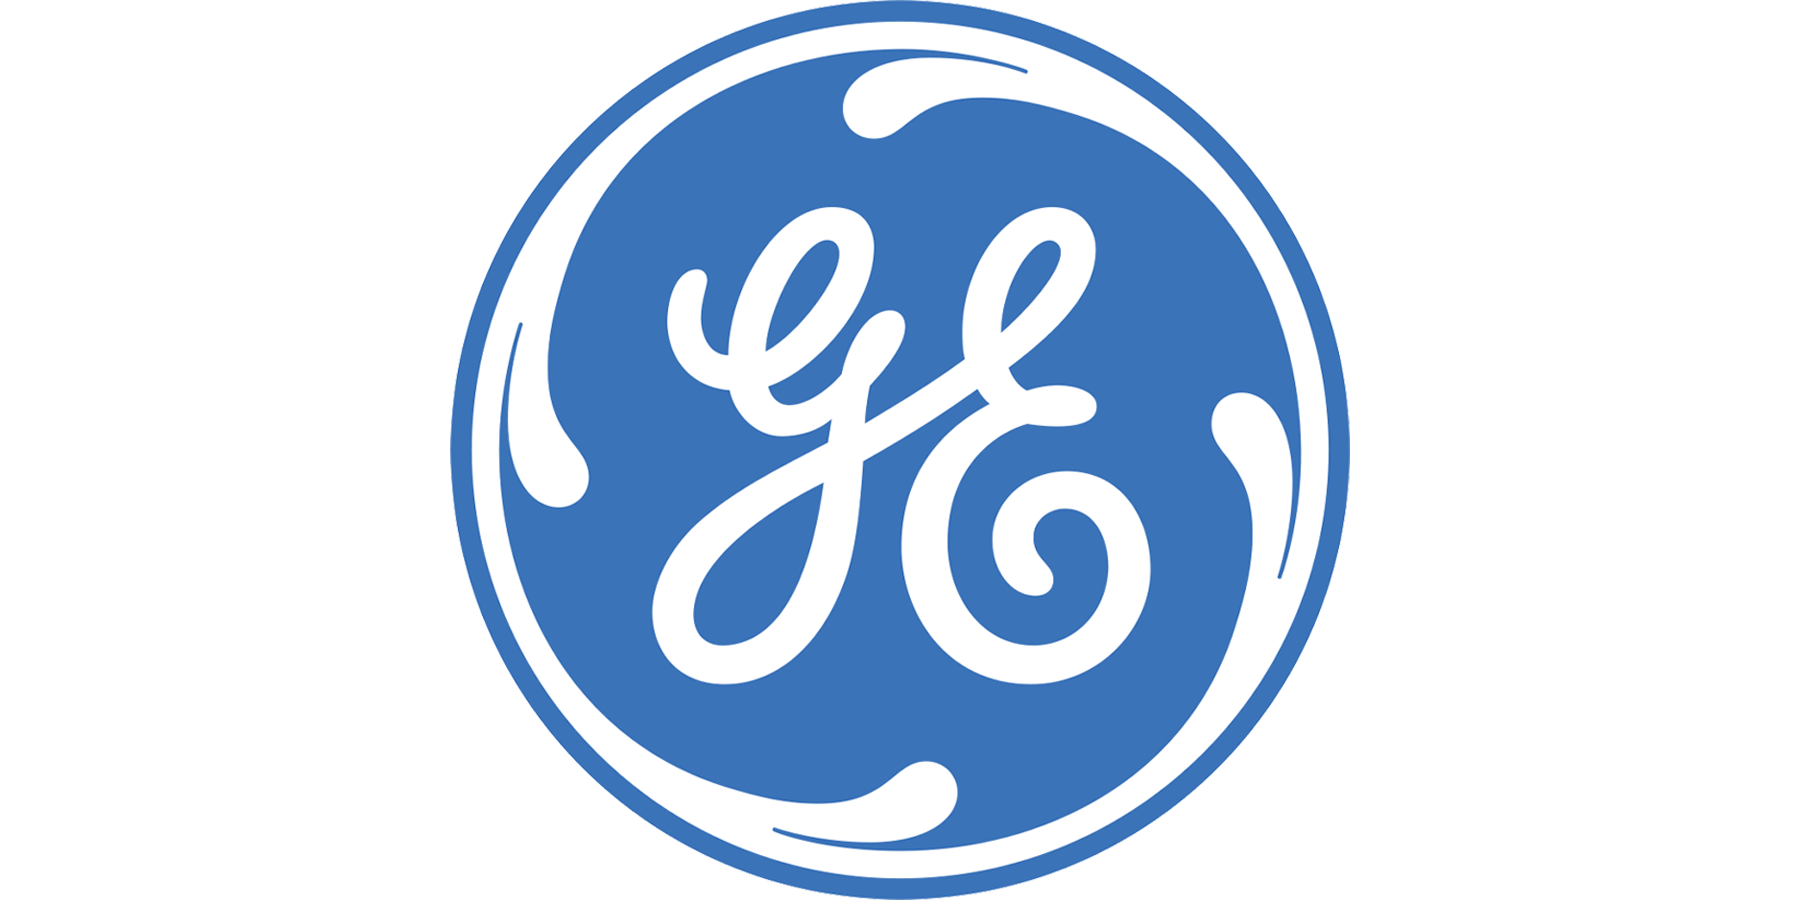 General Electric, GE, full color logo